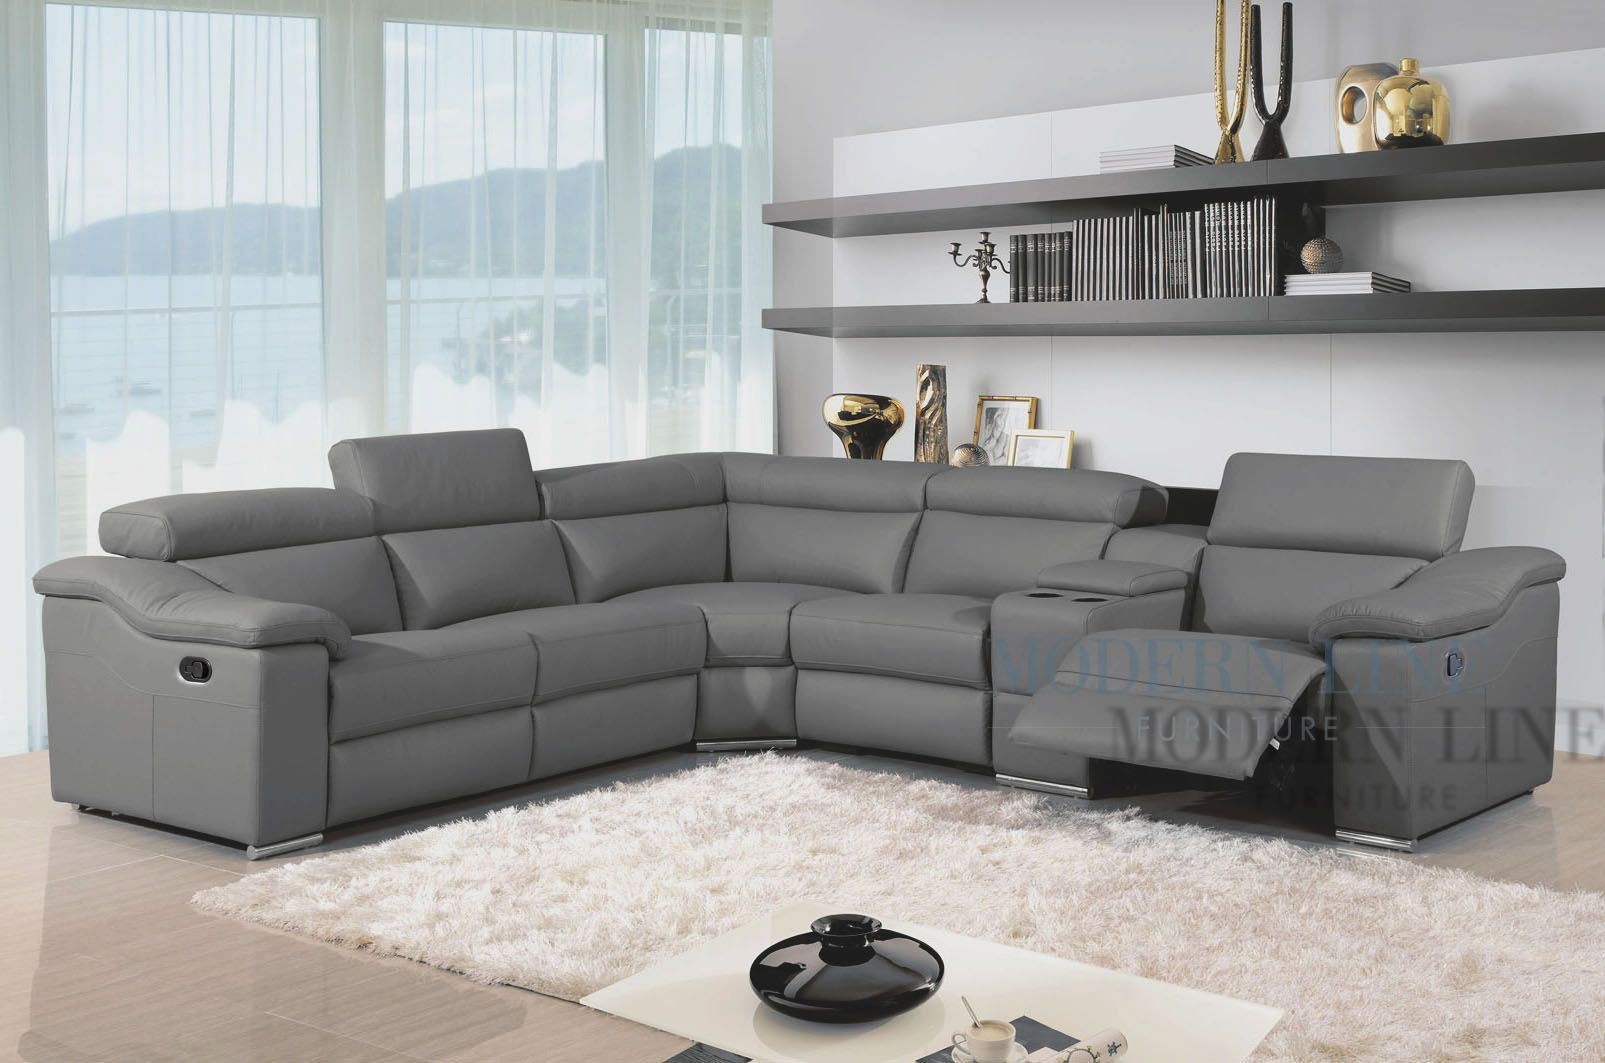 awesome Great Charcoal Grey Sectional Sofa 29 About Remodel Home Design Ideas with Charcoal Grey Sectional : reclining sectional furniture - Sectionals, Sofas & Couches